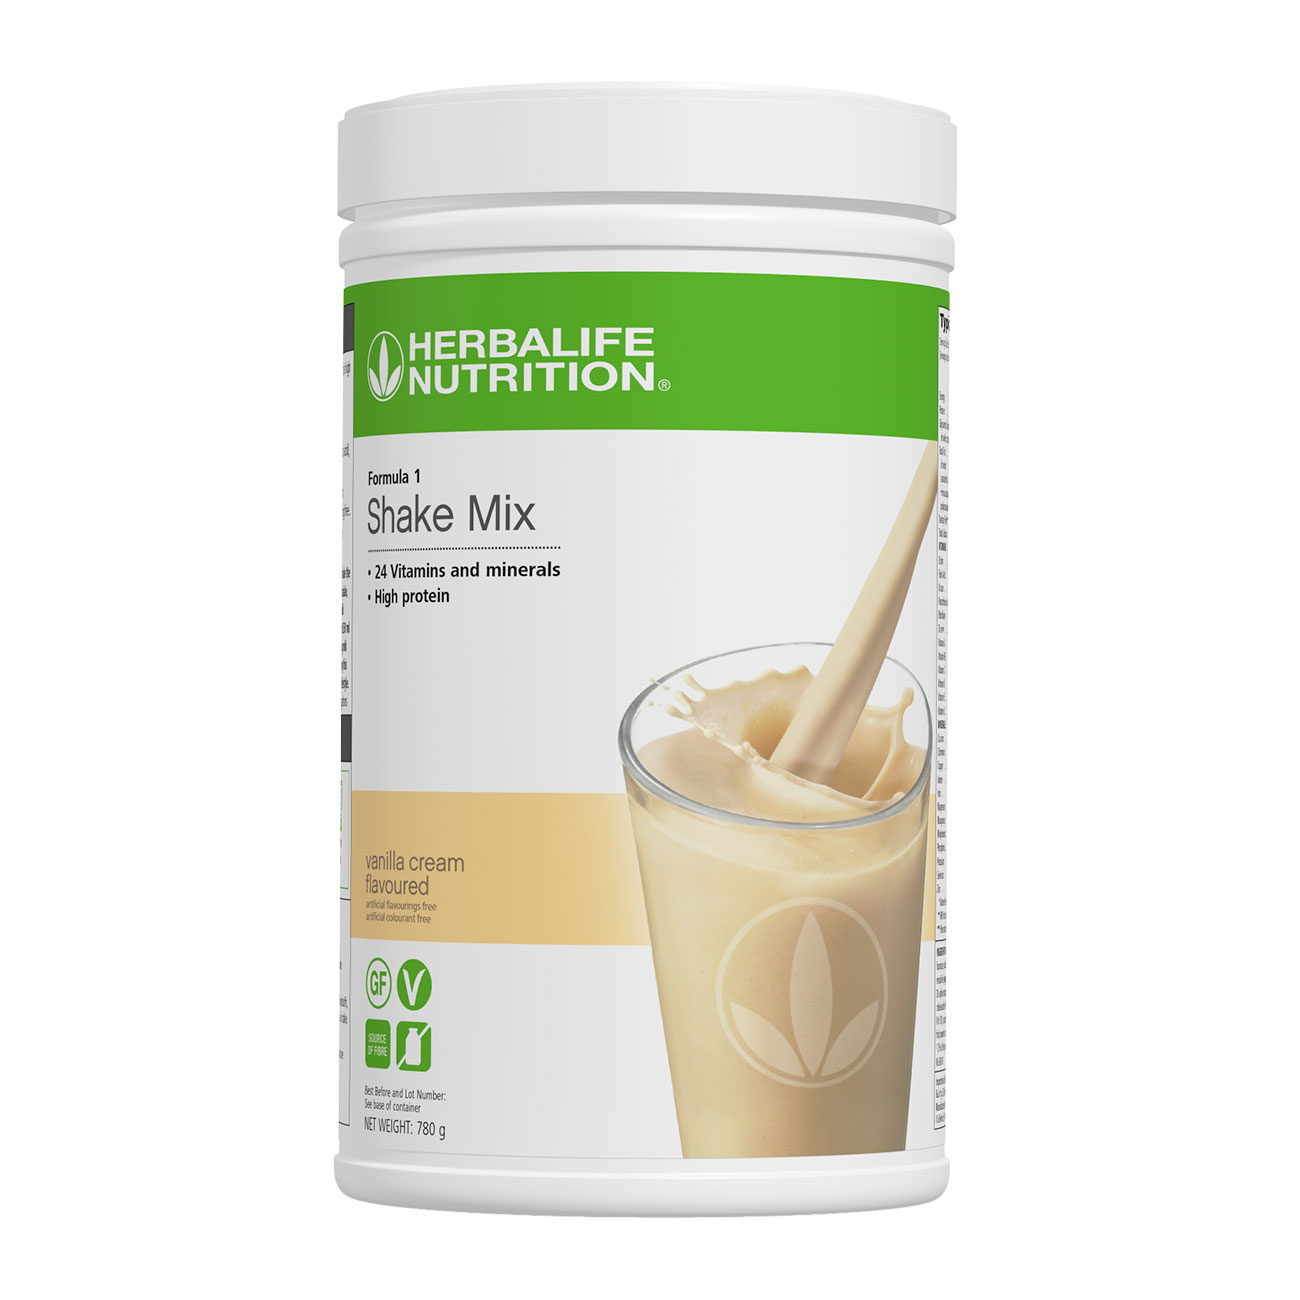 Formula 1 Shake Mix Vanilla Cream Flavoured 780 g product shot